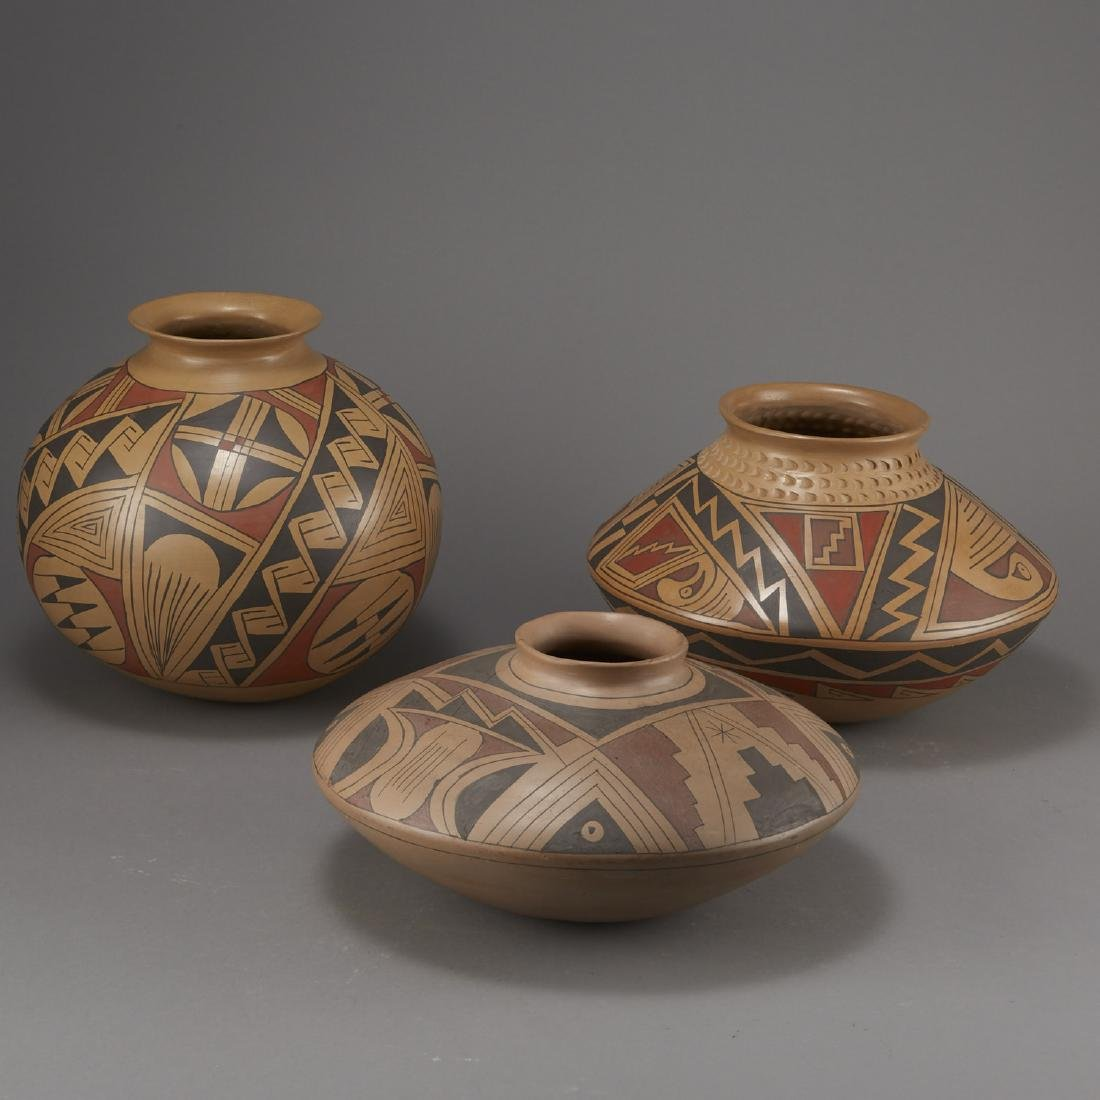 Group of 3 Large Polychrome Pottery Jars - 3